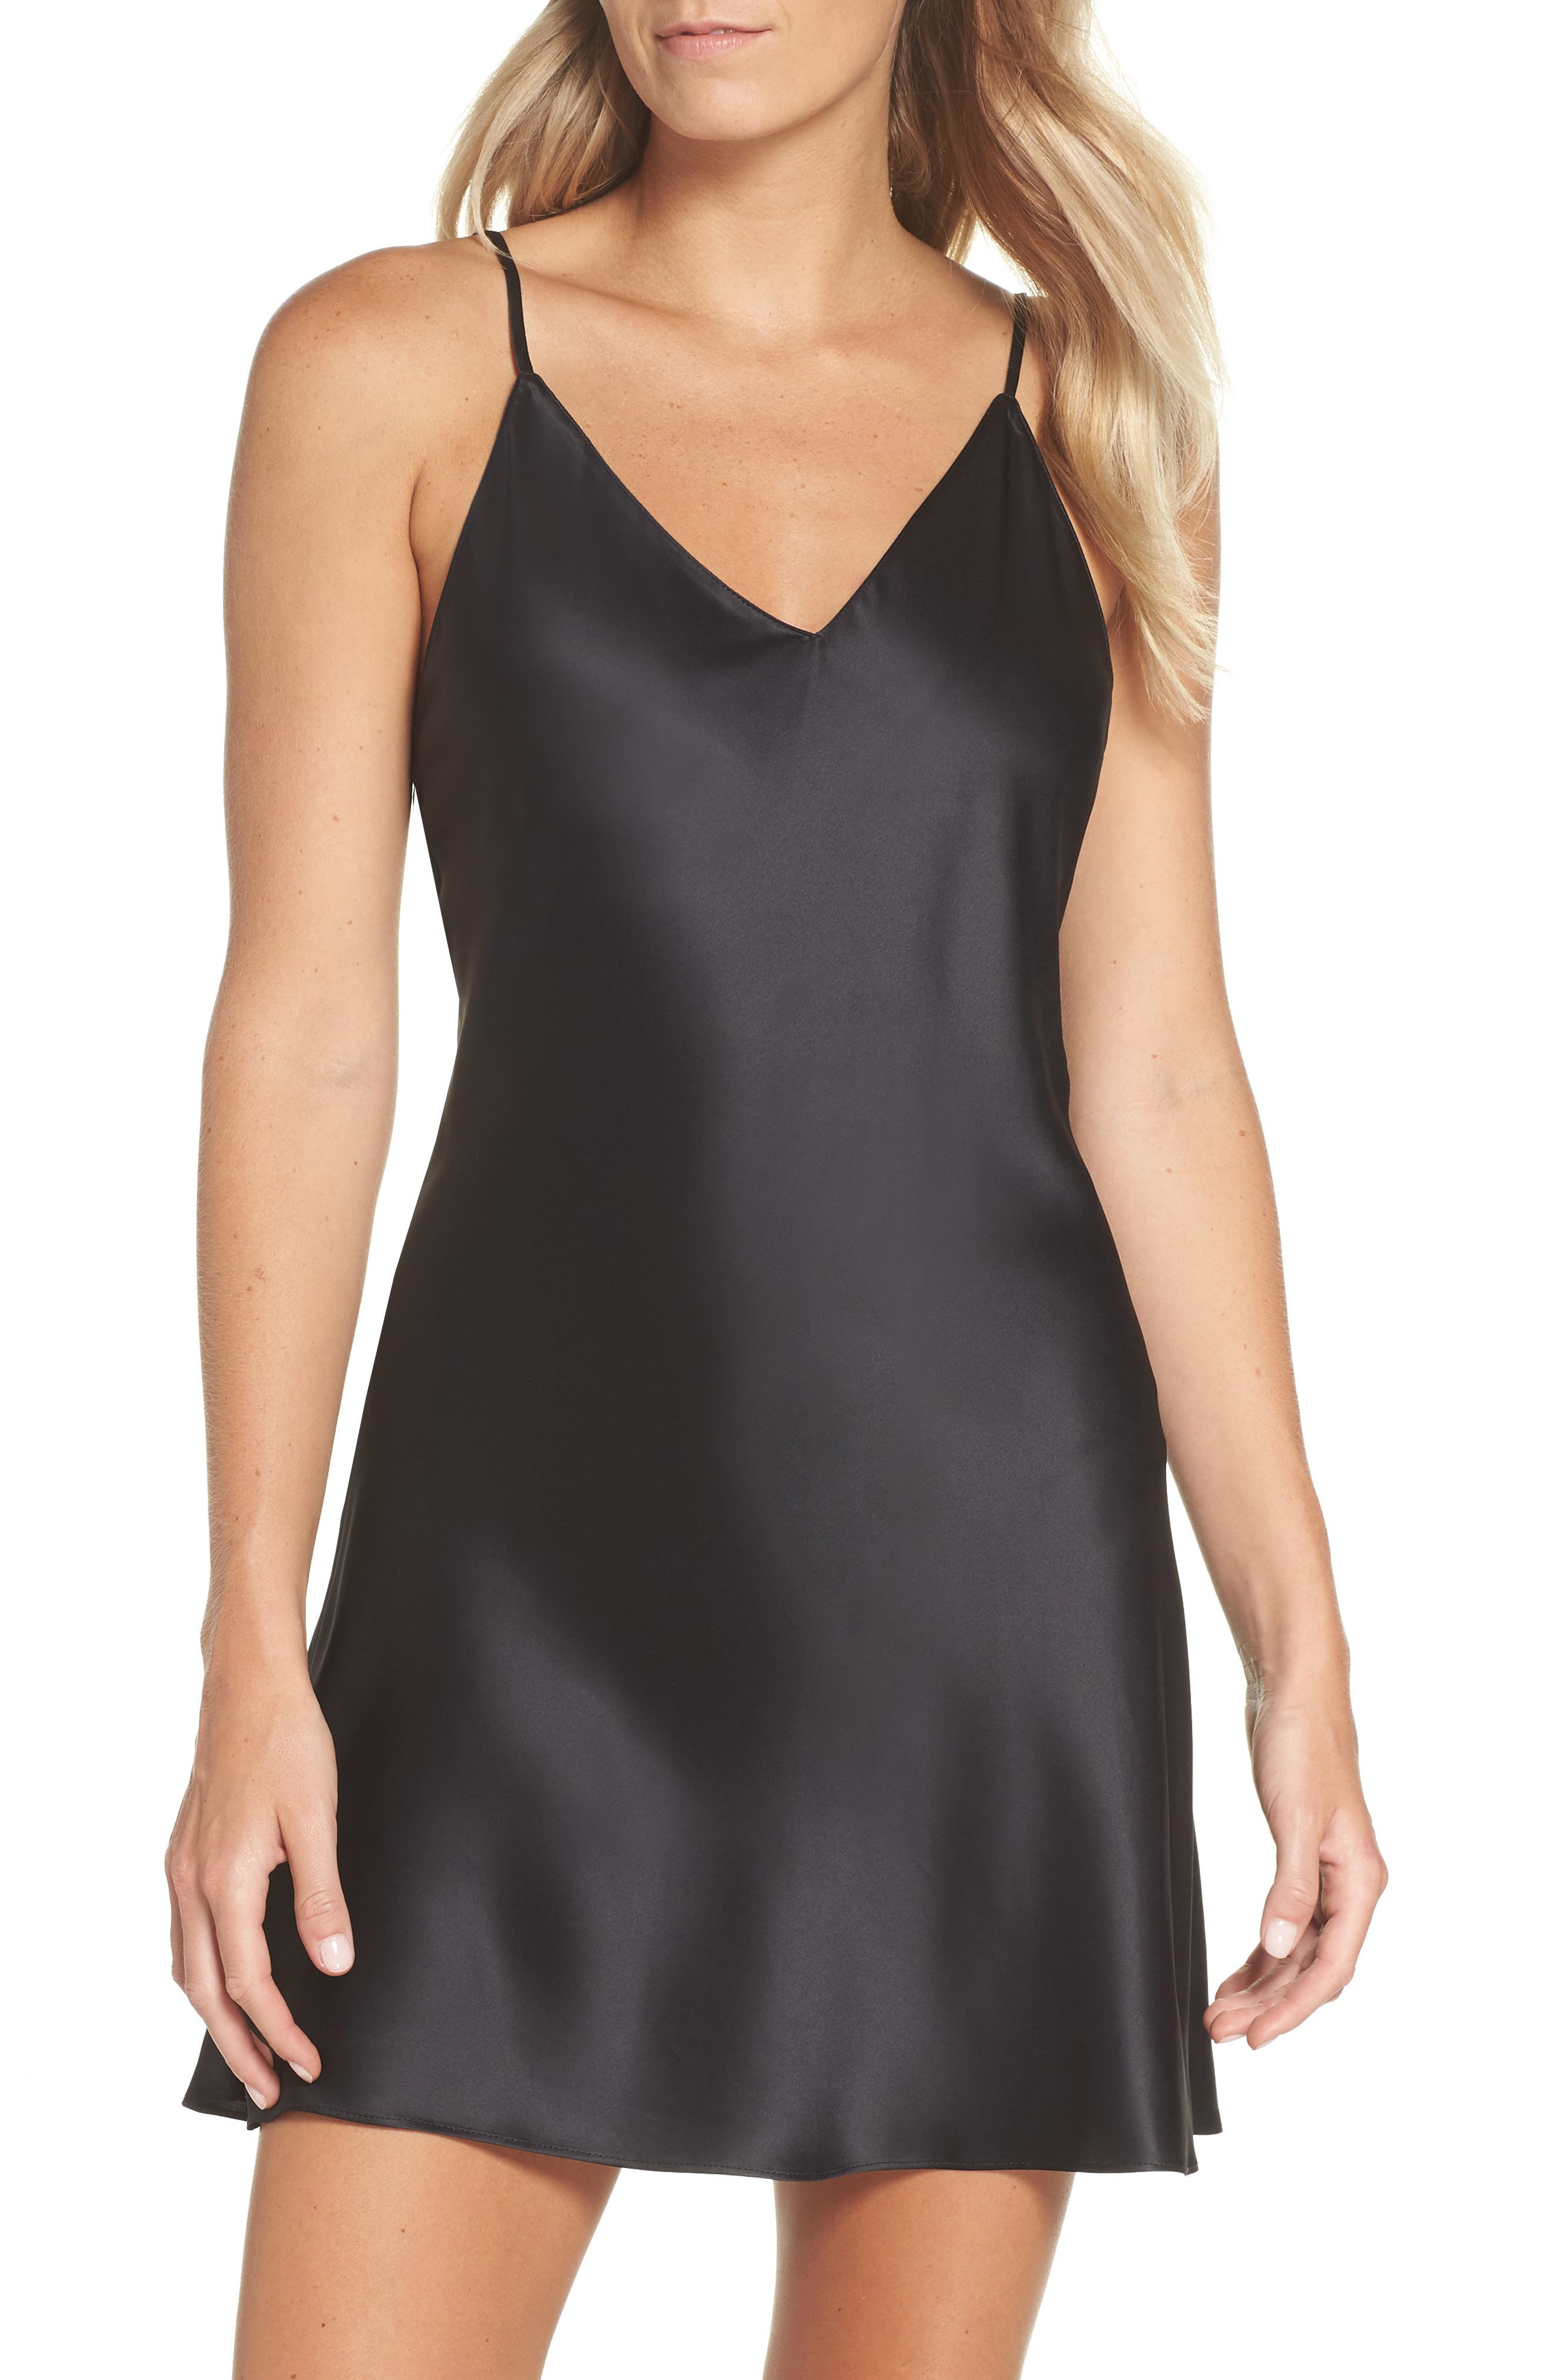 NATORI Feathers Satin Elements Chemise in Black